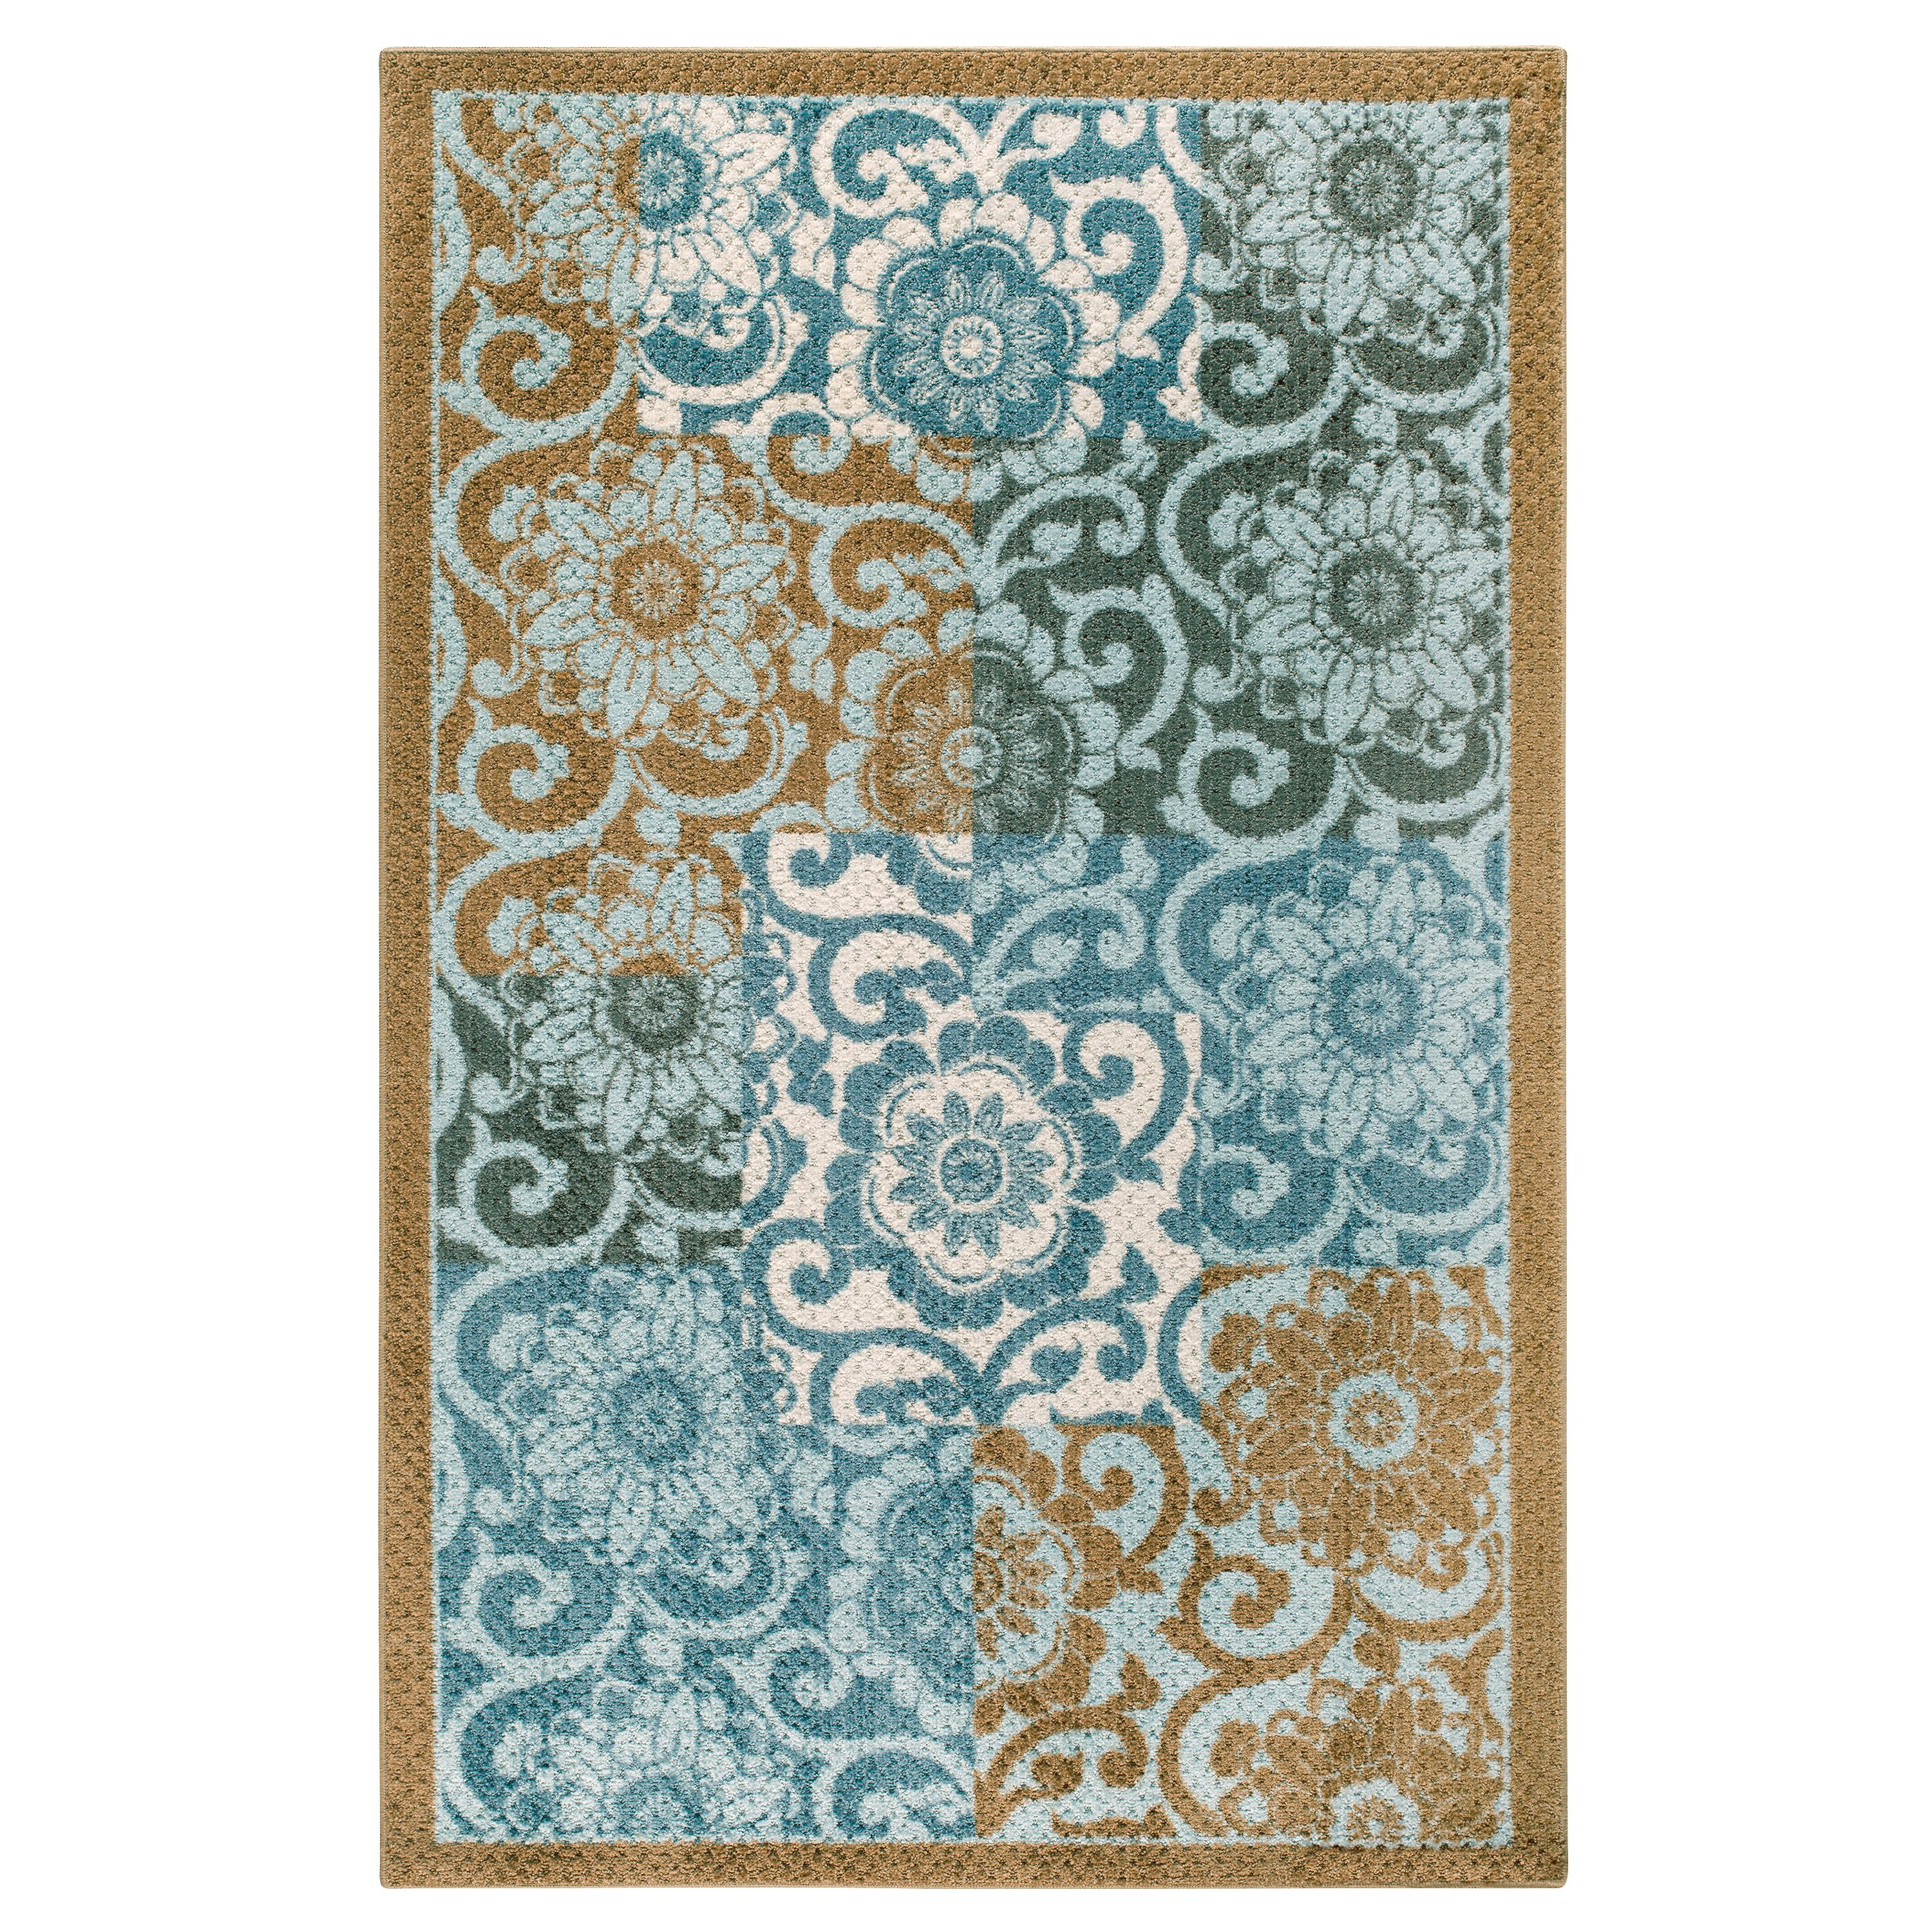 Better Homes Gardens Peony Blocks Textured Print Area Rug Or